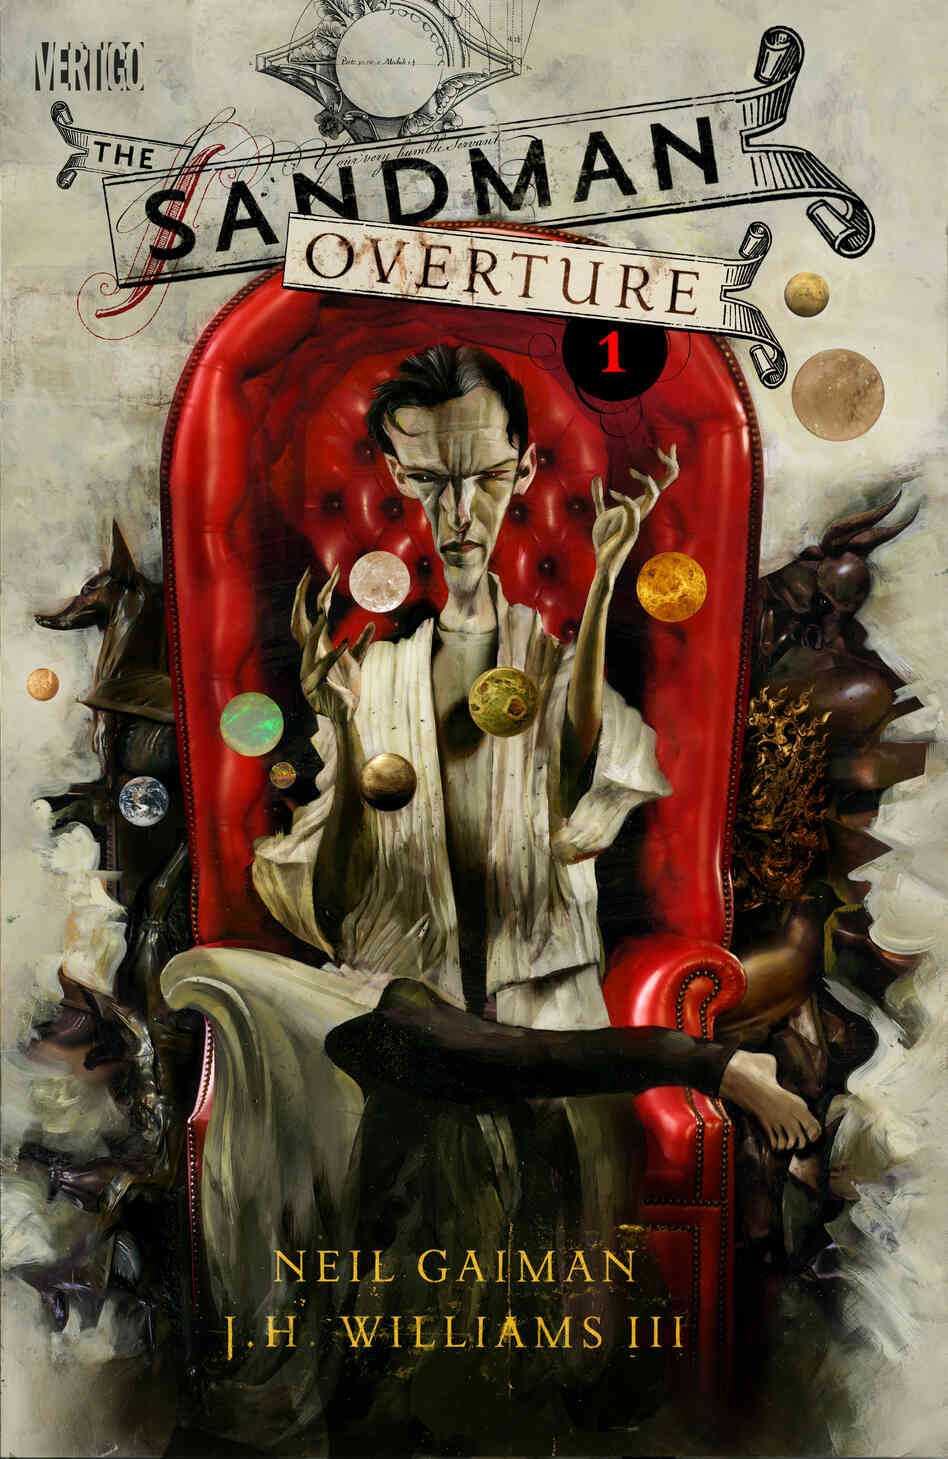 Dave McKean's variant cover for Sandman: Overture 1 presents a new vision of the Sandman.